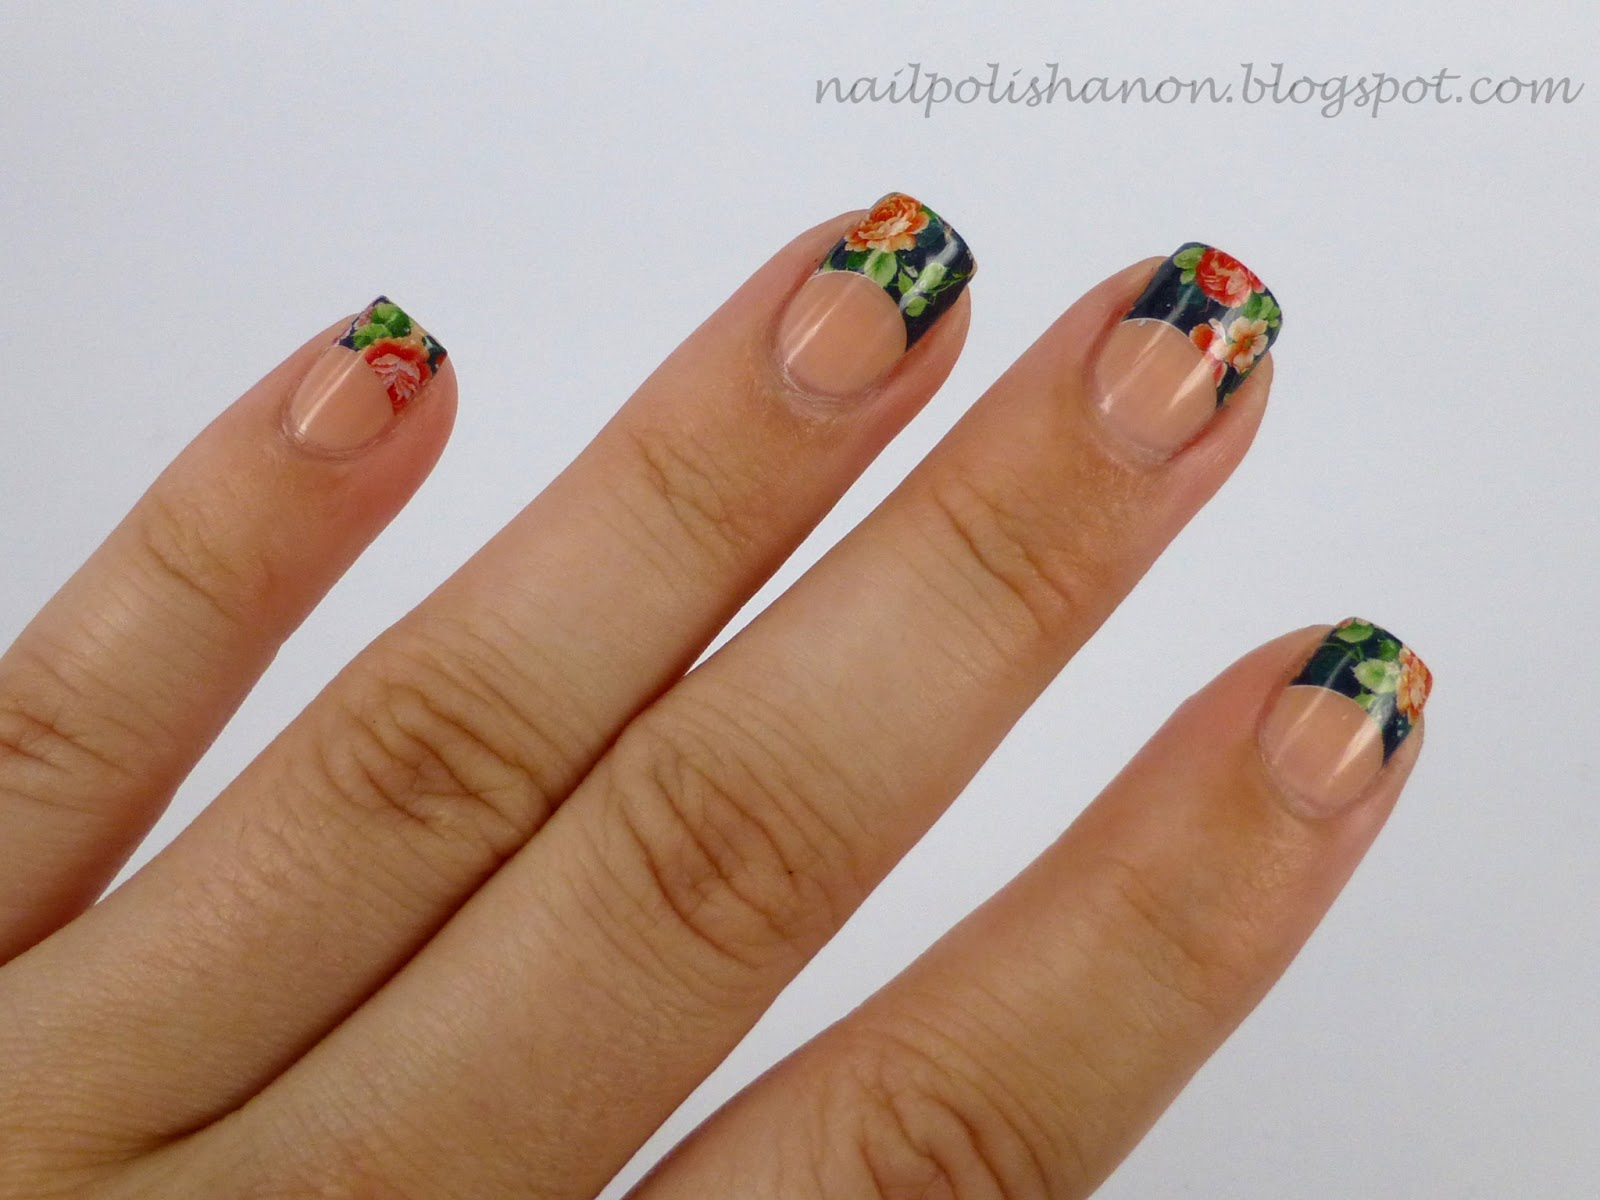 Nail Polish Anon: KKcenterHk French Water Decals Review